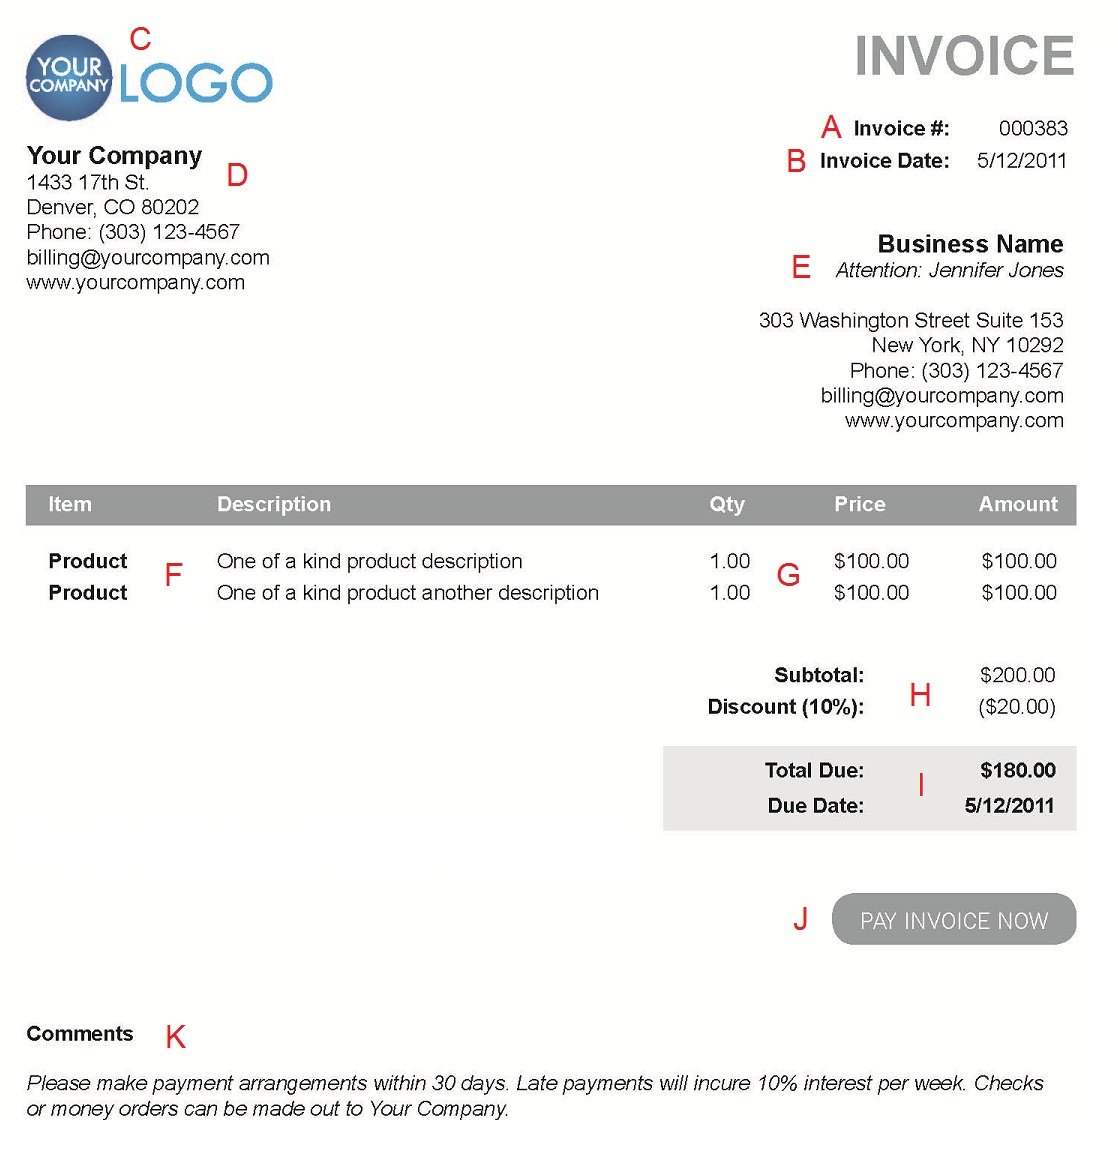 Coolmathgamesus  Picturesque The  Different Sections Of An Electronic Payment Invoice With Inspiring A  With Attractive My Deluxe Invoices Also How To Import Invoices Into Quickbooks In Addition Reconcile Invoices And Invoice Paid As Well As Receipt Invoice Template Additionally Commercial Invoice For Customs From Paysimplecom With Coolmathgamesus  Inspiring The  Different Sections Of An Electronic Payment Invoice With Attractive A  And Picturesque My Deluxe Invoices Also How To Import Invoices Into Quickbooks In Addition Reconcile Invoices From Paysimplecom